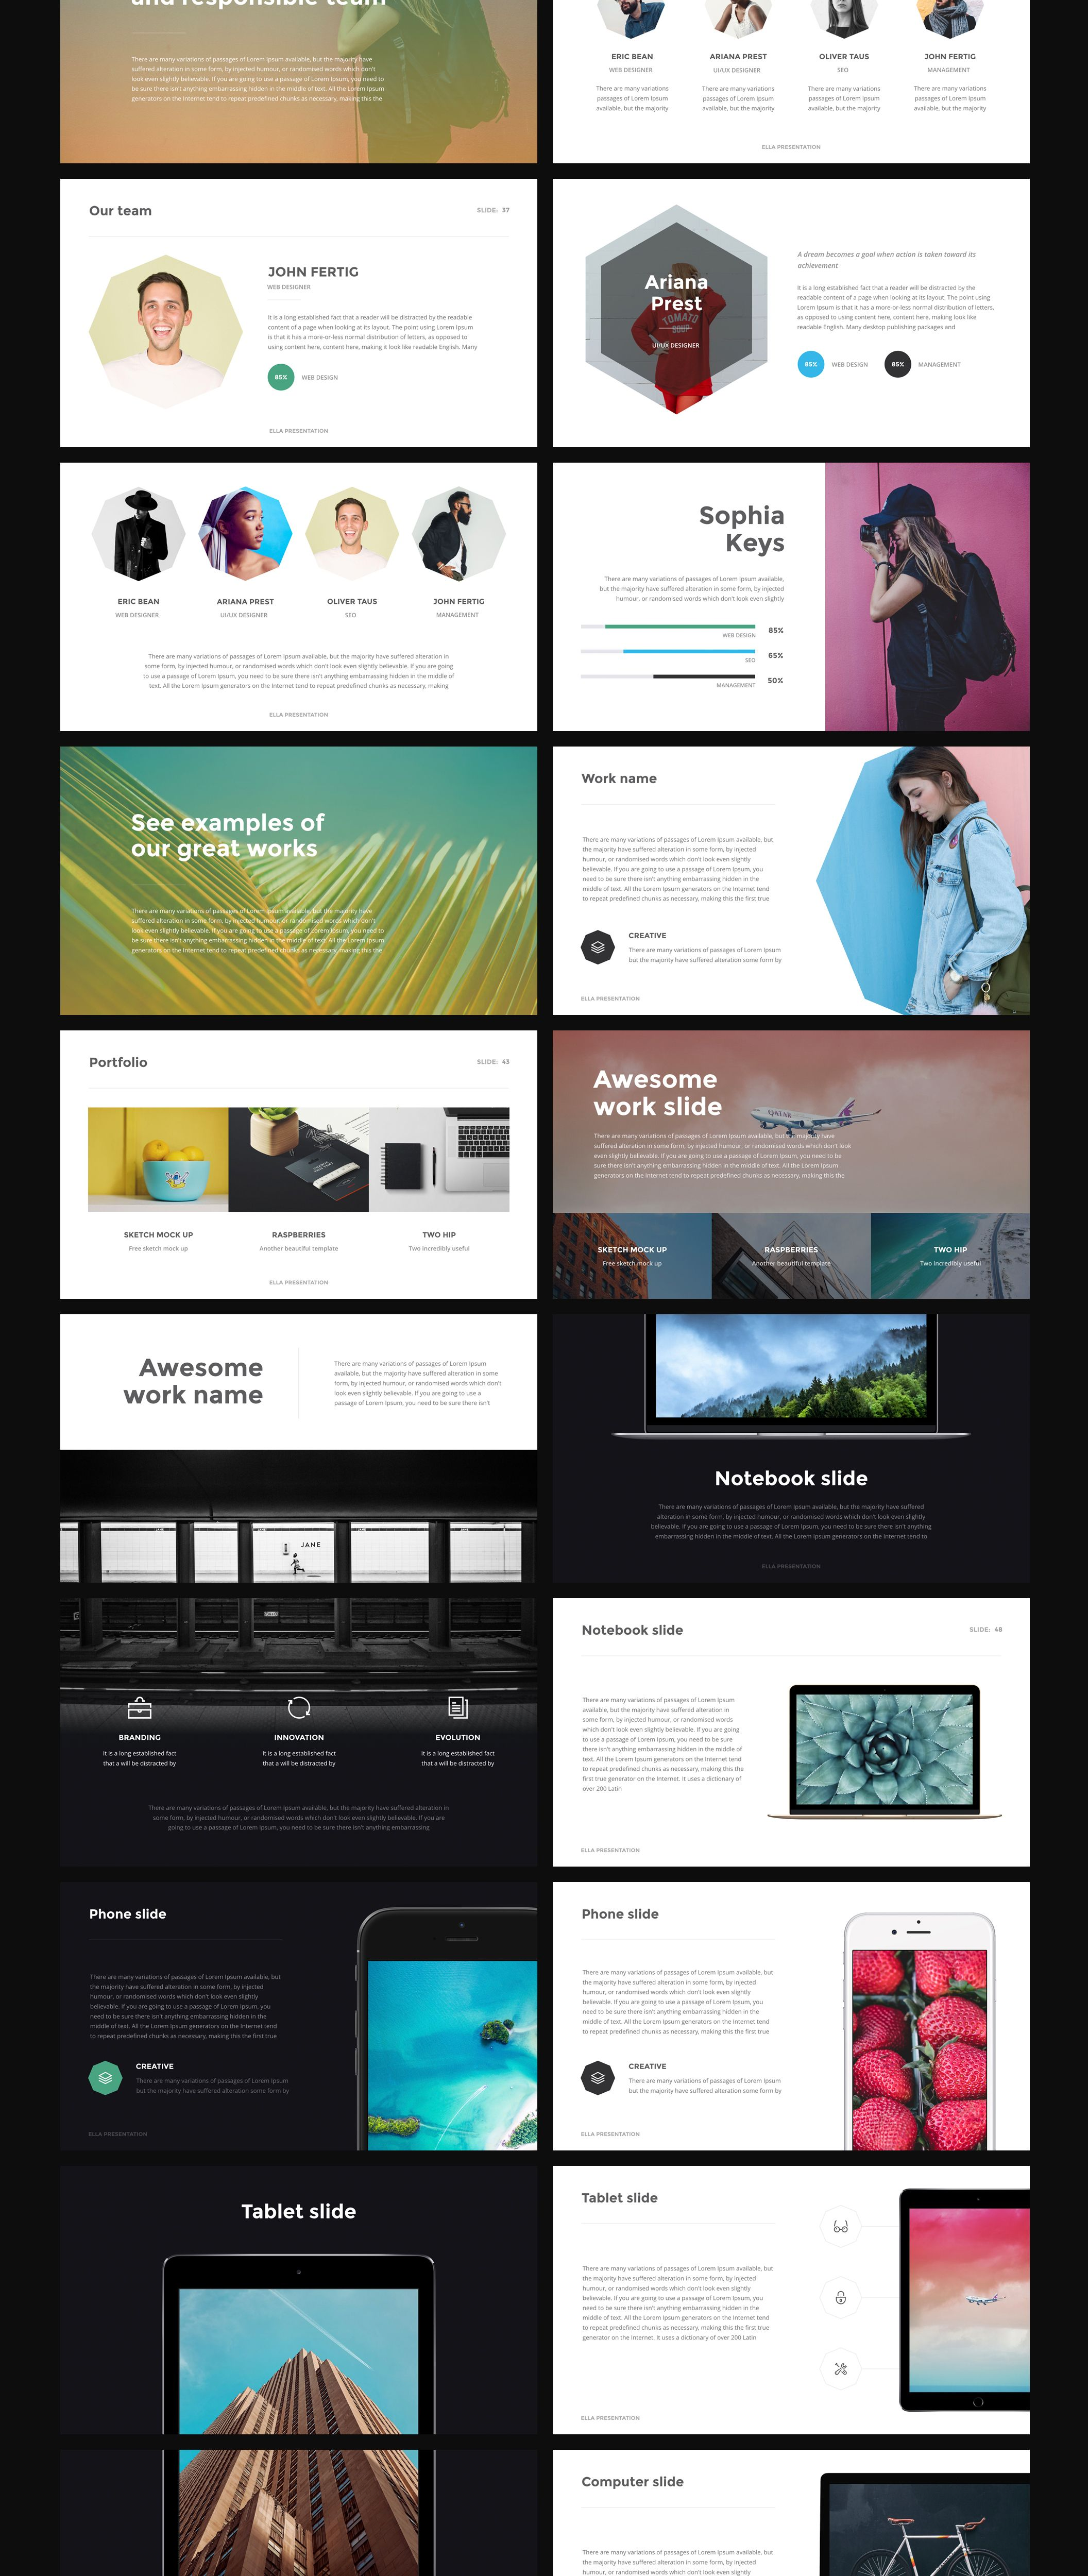 ella it's simple and beautiful clean presentation for powerpoint, Powerpoint templates